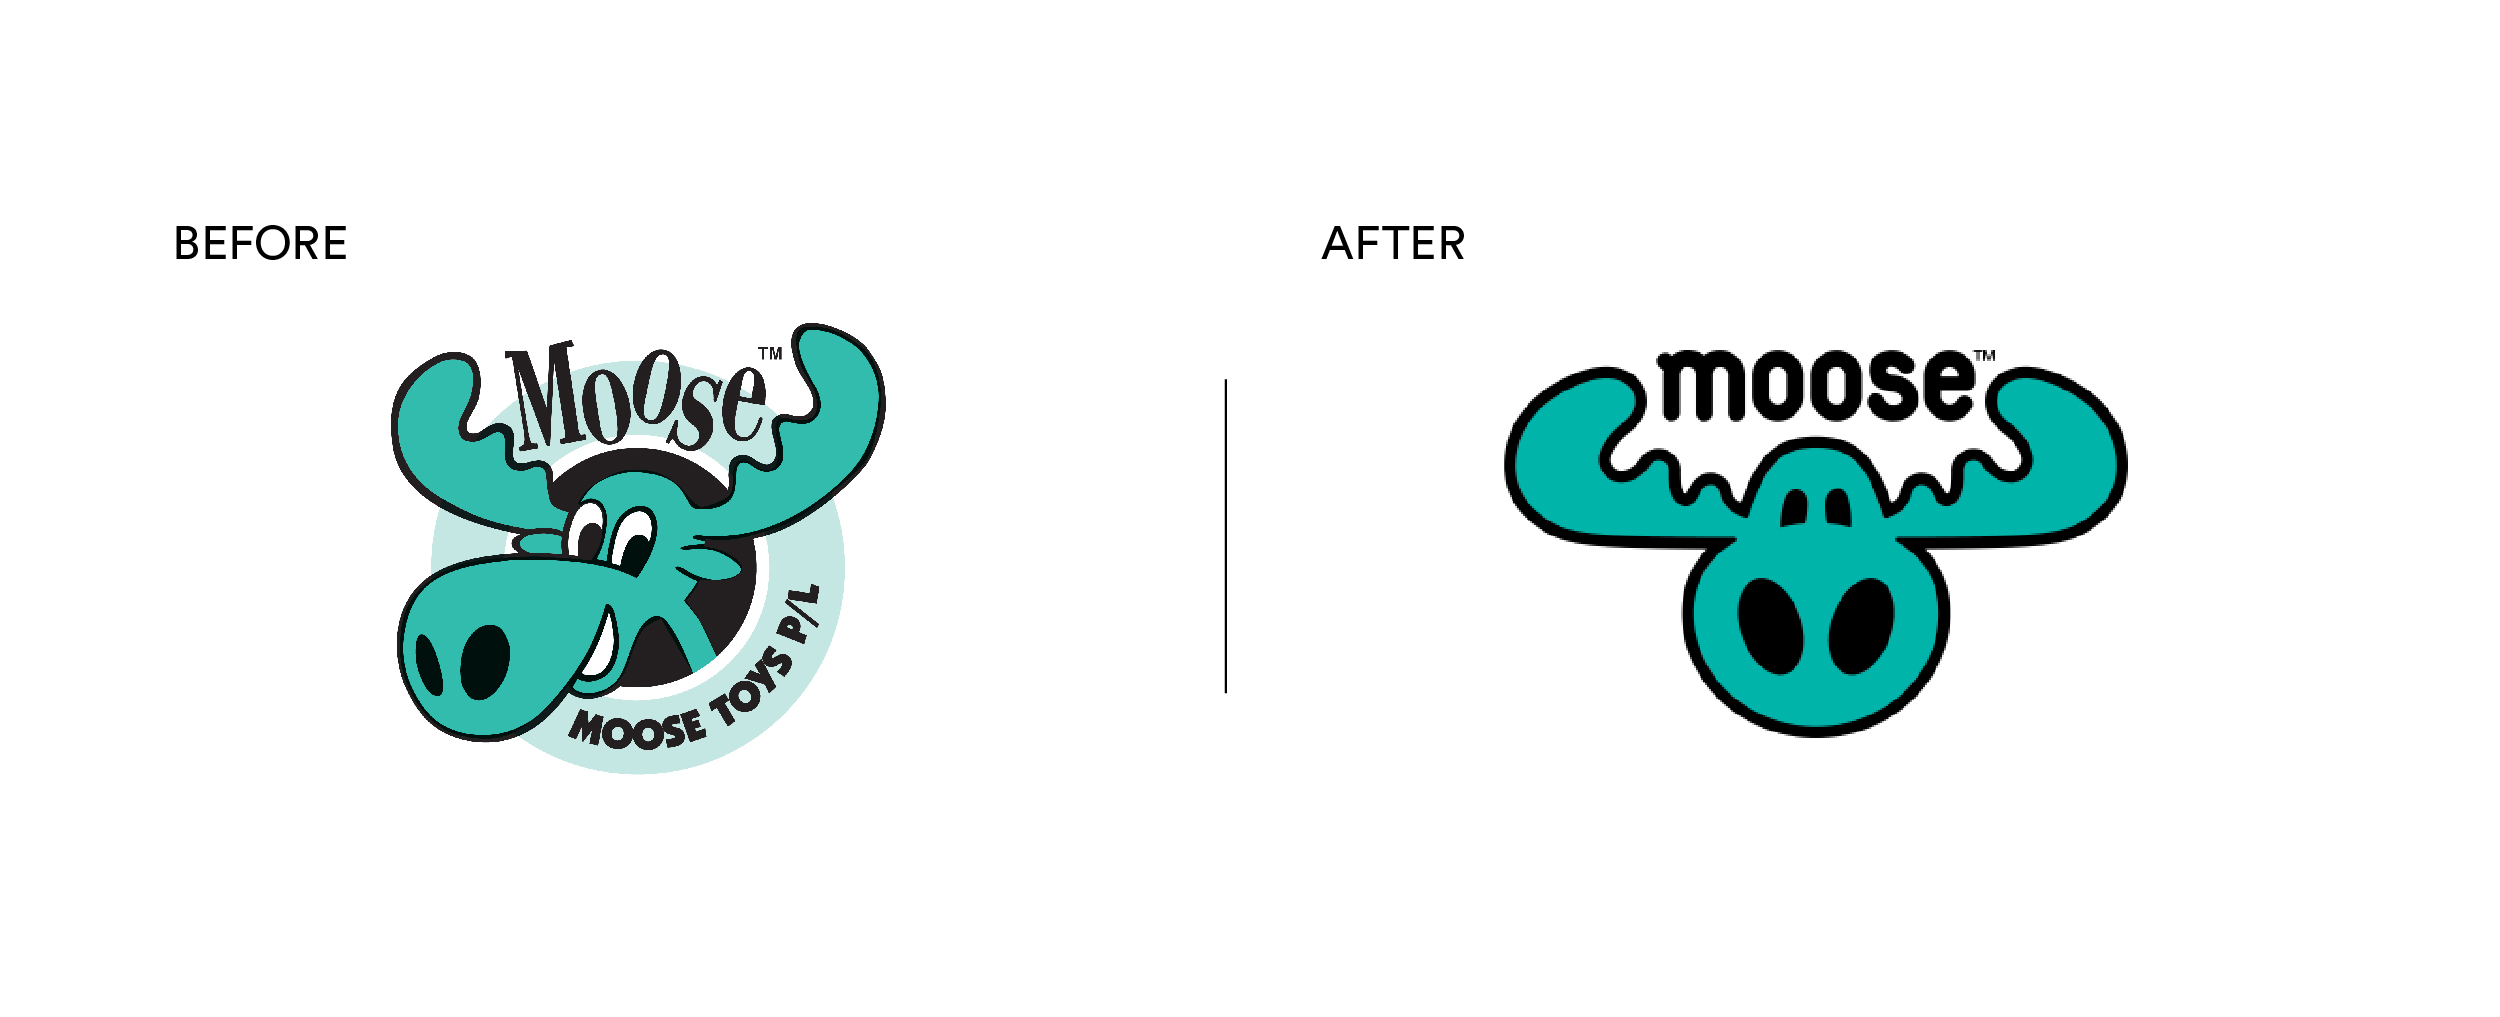 Moose Toys Brand Mark before and after brand rebrand